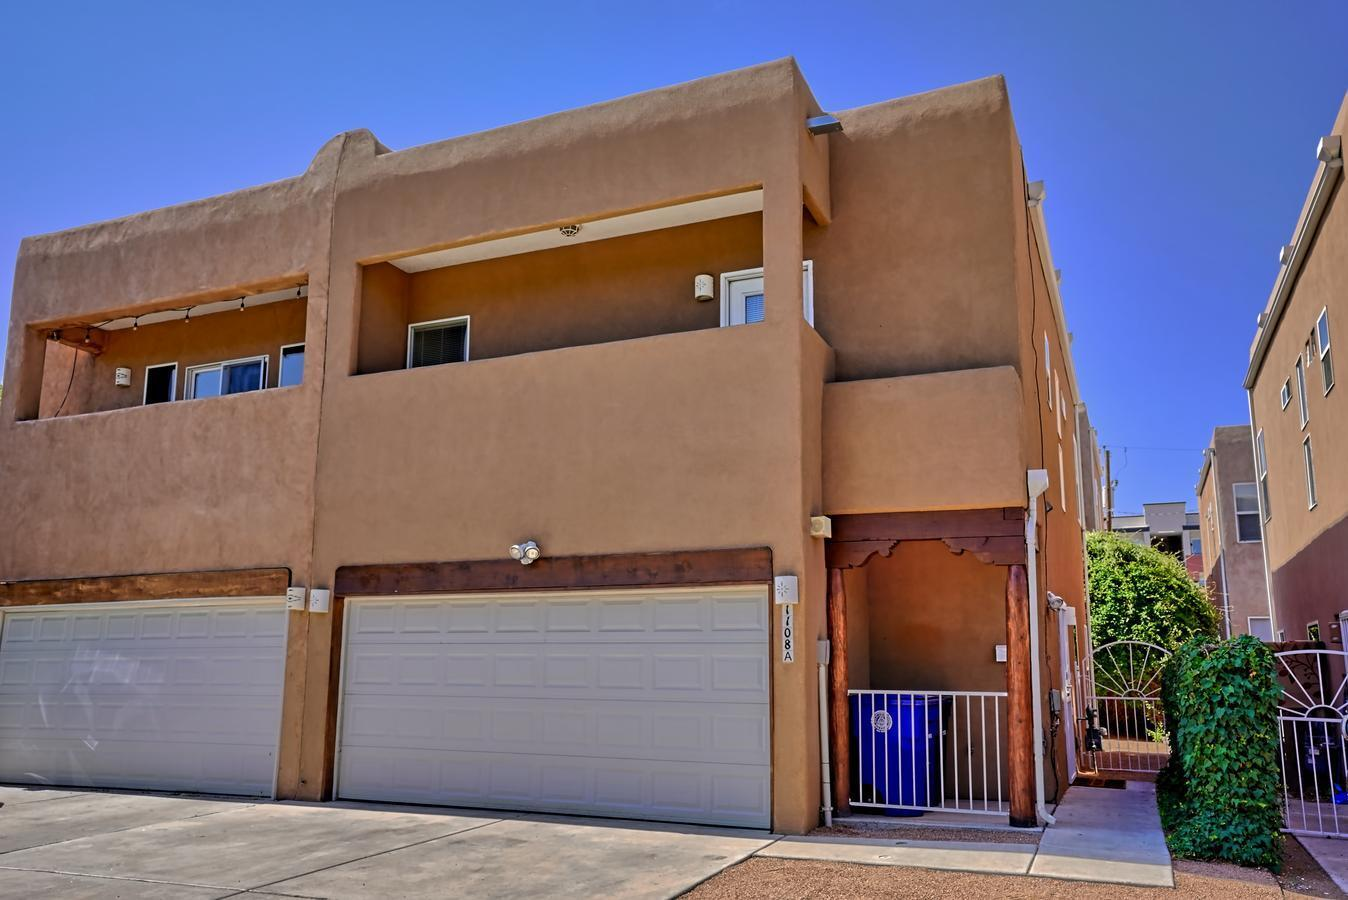 Hard to find in UNM area ~ fantastic light and bright townhome ... 3 bedrooms (huge primary bedroom-with great walk-in closet), 2.5 baths, 2 car garage built in 2004.  Open floor plan with tile flooring throughout downstairs.  Tons of updates!  New paint & carpet (6/21); New Stainless Appliances (7/21); Refrigerated Air (combo unit) replaced (10/20;) ; New Roof & Skylights (10/18);  New Washer & Dryer  (11/17); New Water Htr  (7/17); New Stucco (10/15) and more.  Walk to UNM, UNMH, and Pres Hospital.  Two minute walk to beautiful Spruce Park. . . It's sparkly clean, cute, and ready for a new owner.   A great place to call home!